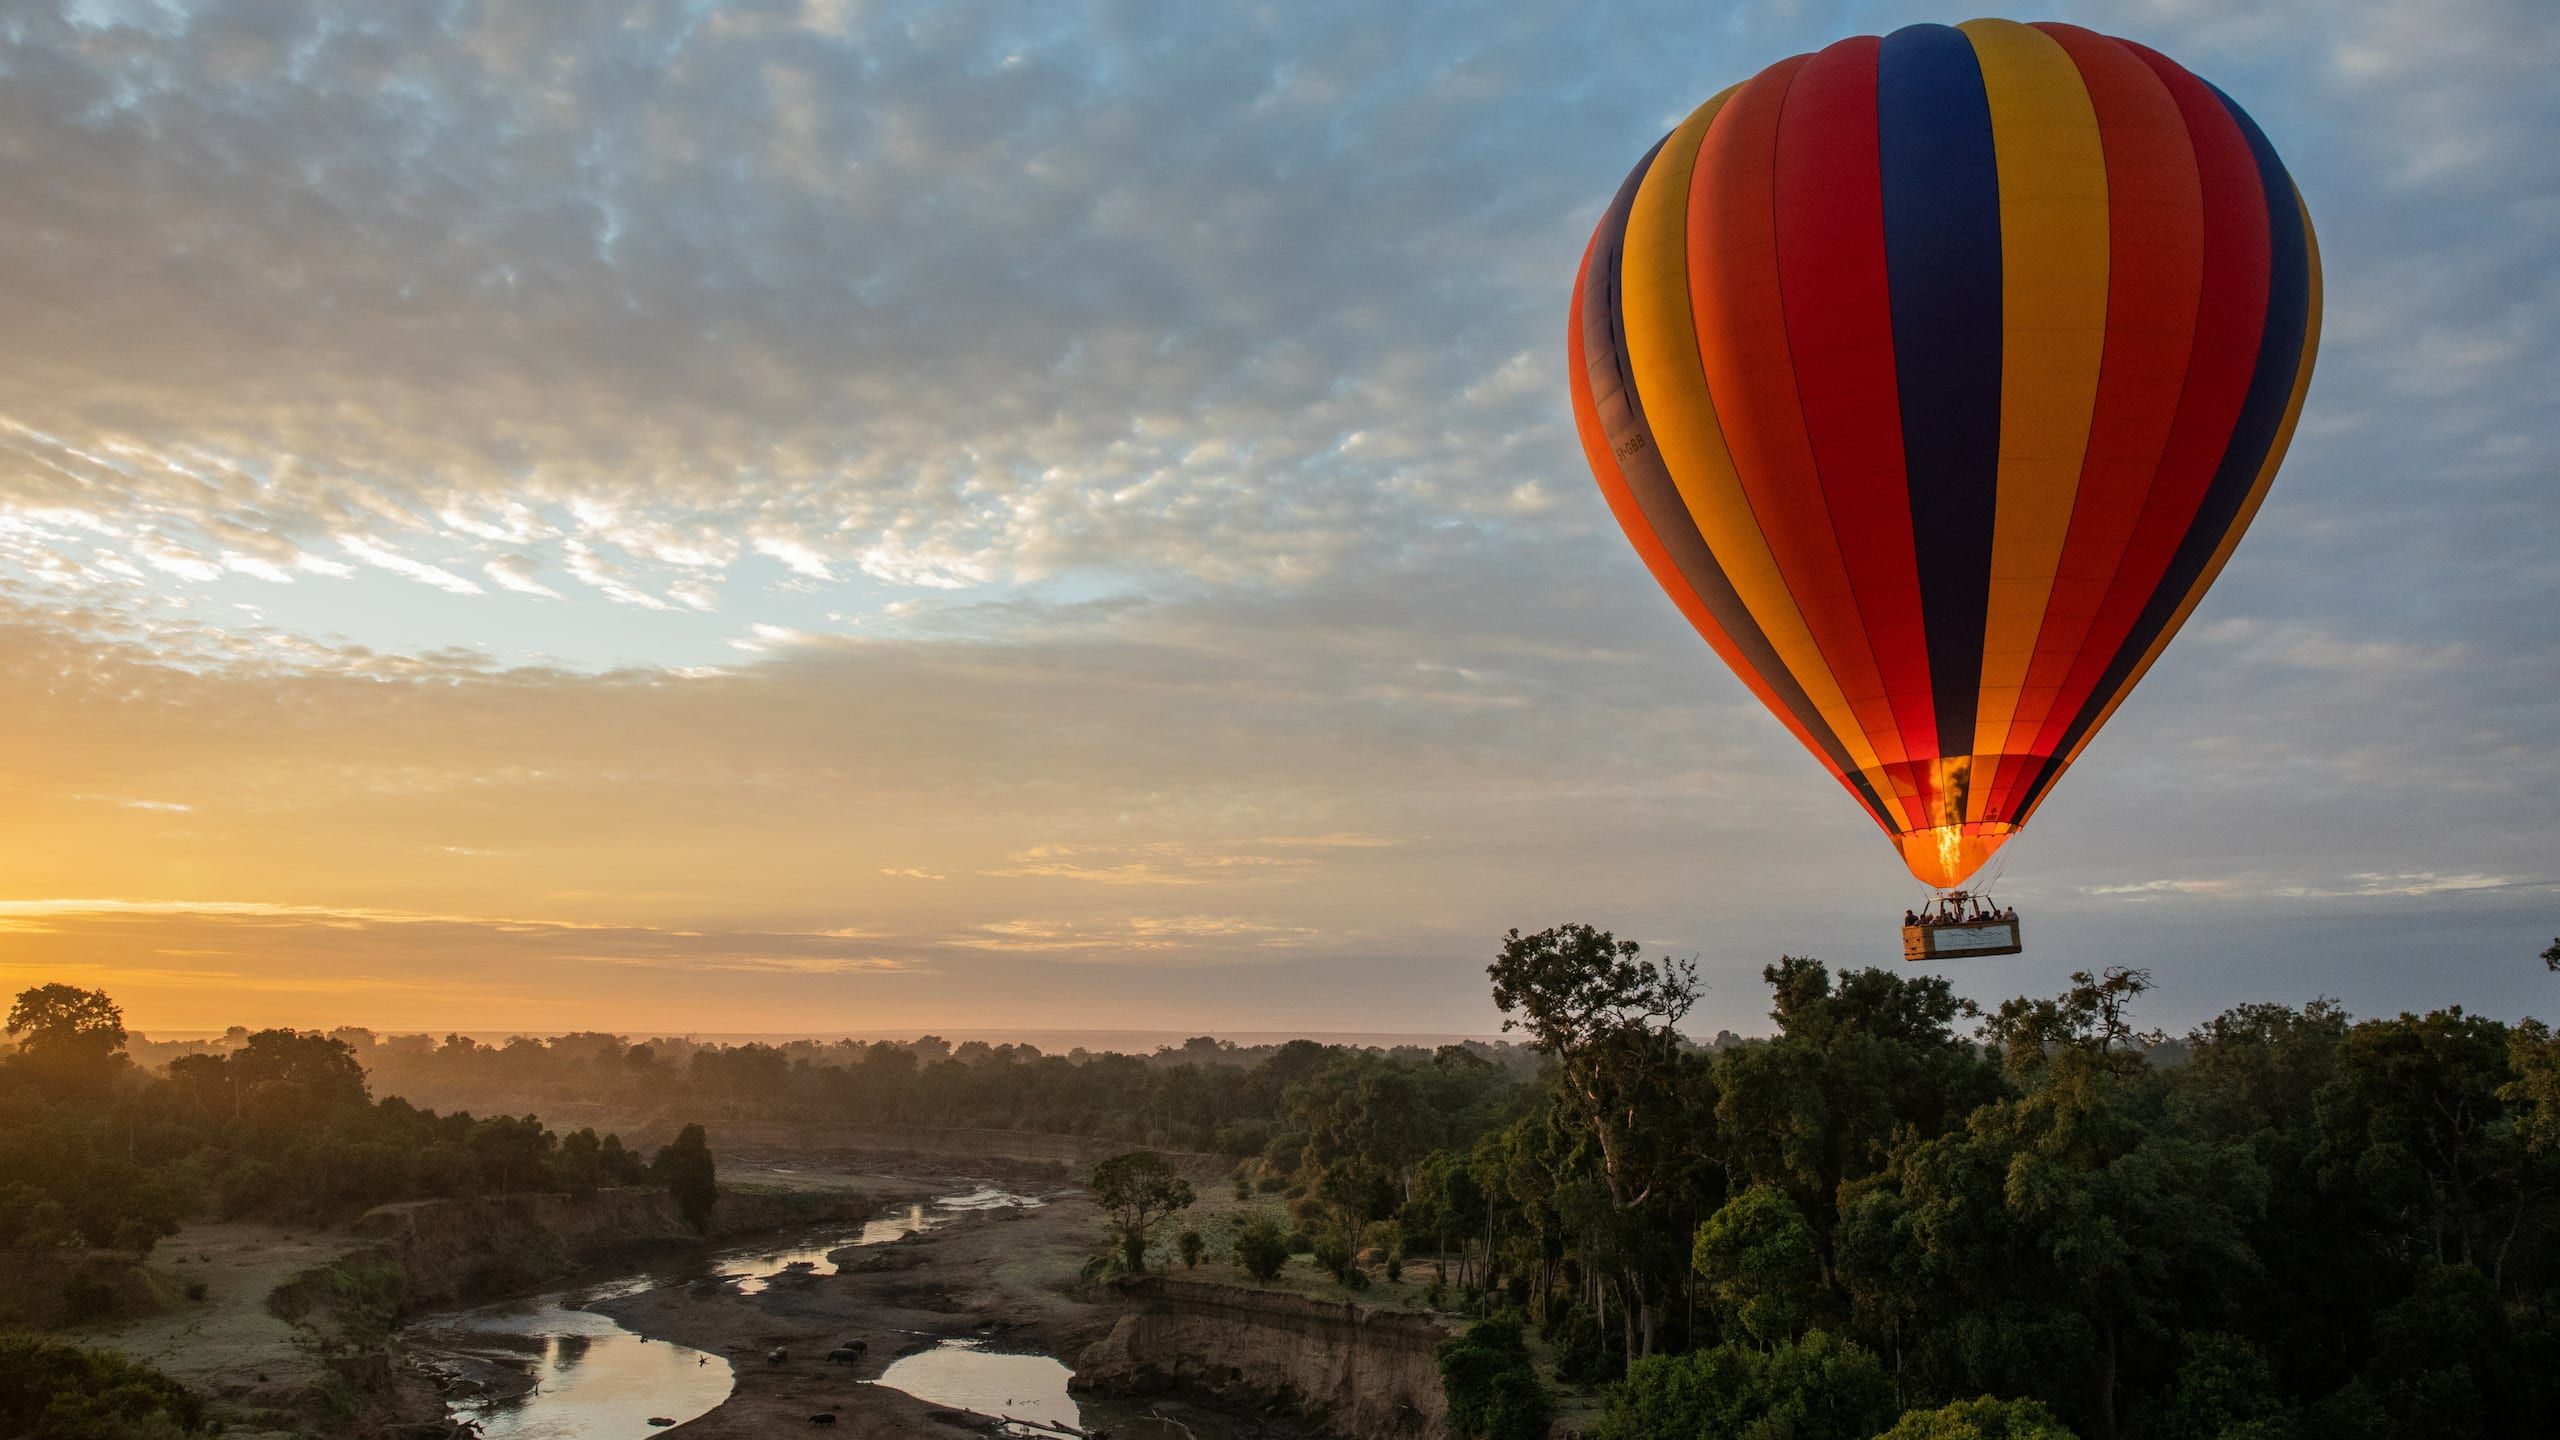 The Masai Mara is otherworldly from a balloon. © Wildlife Safari